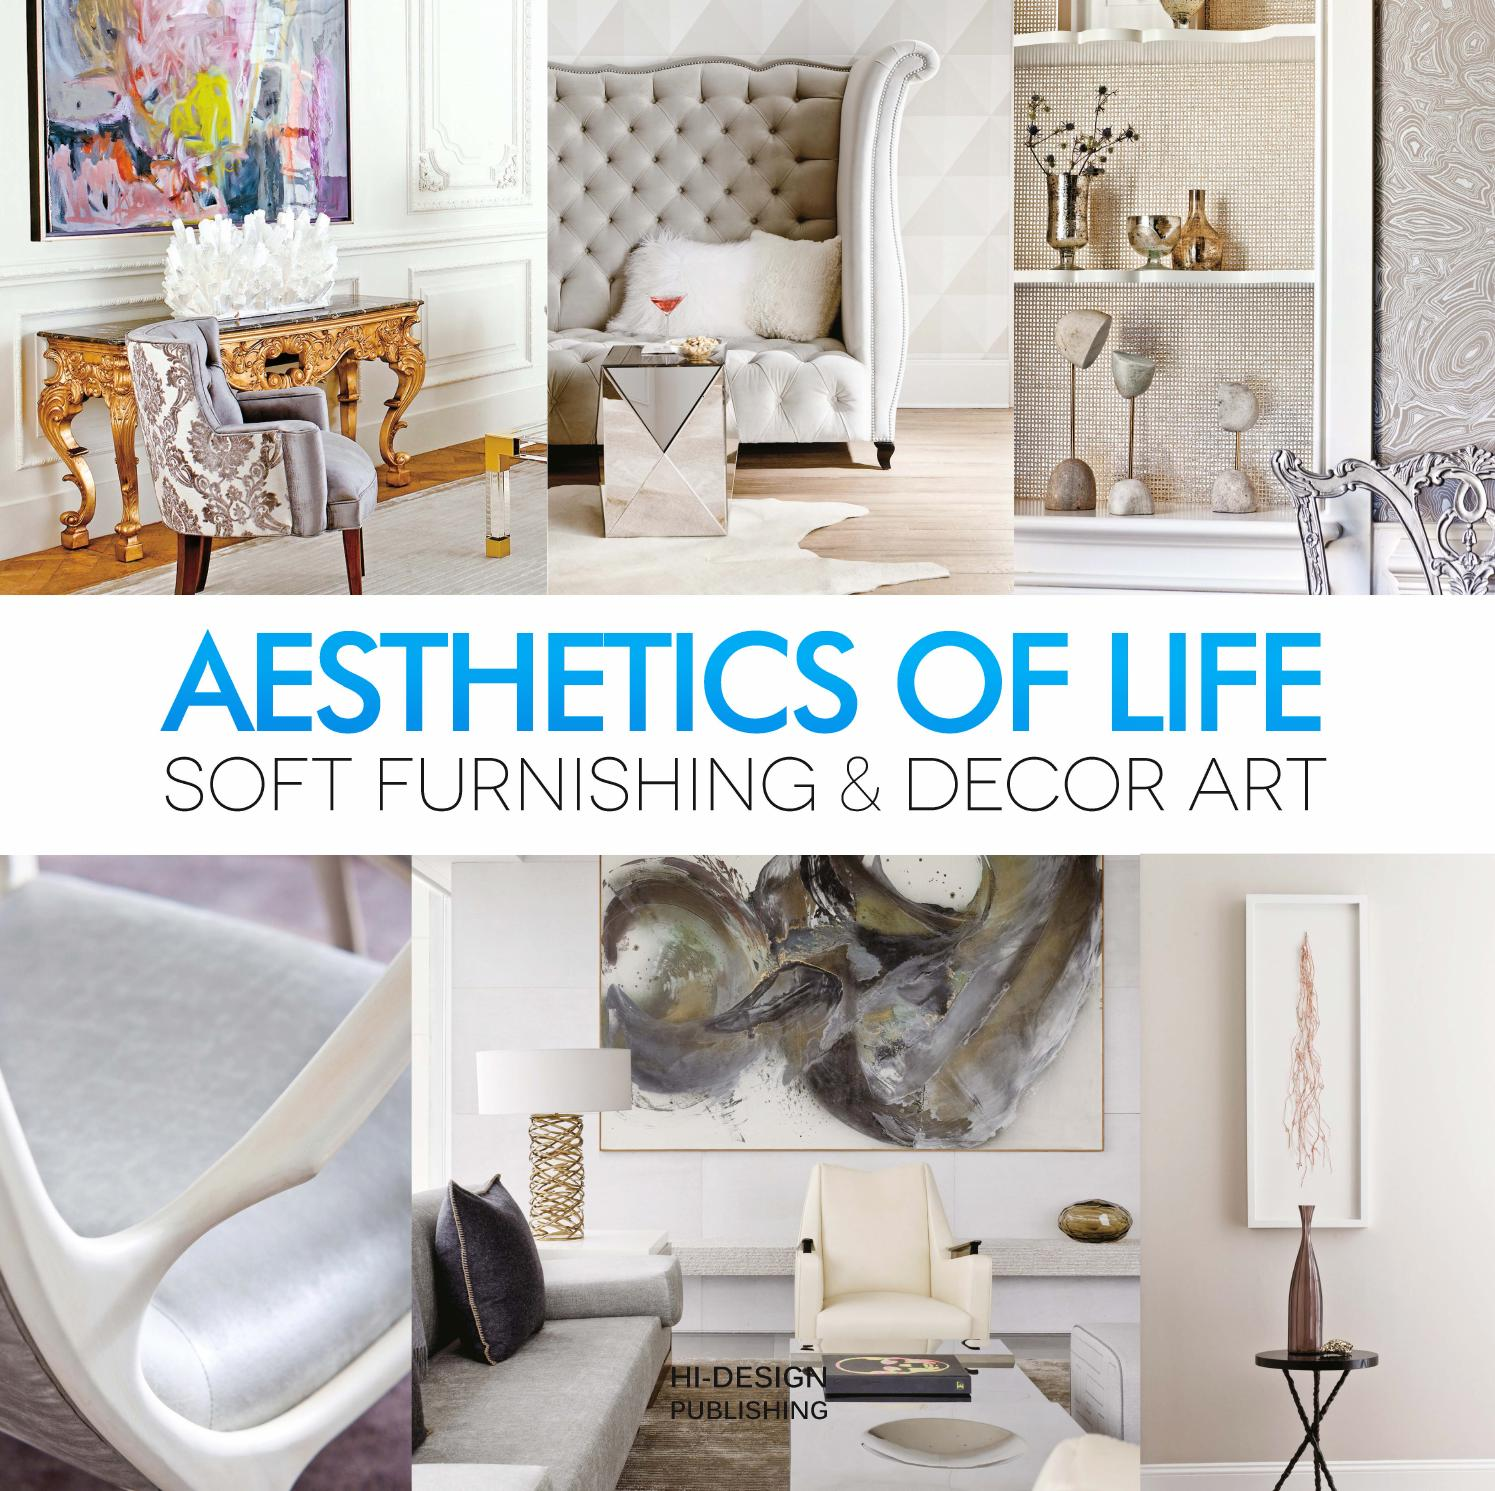 Aesthetics Of Life Soft Furnishing U0026 Decor Art By HI DESIGN INTERNATIONAL  PUBLISHING (HK) CO., LTD.   Issuu